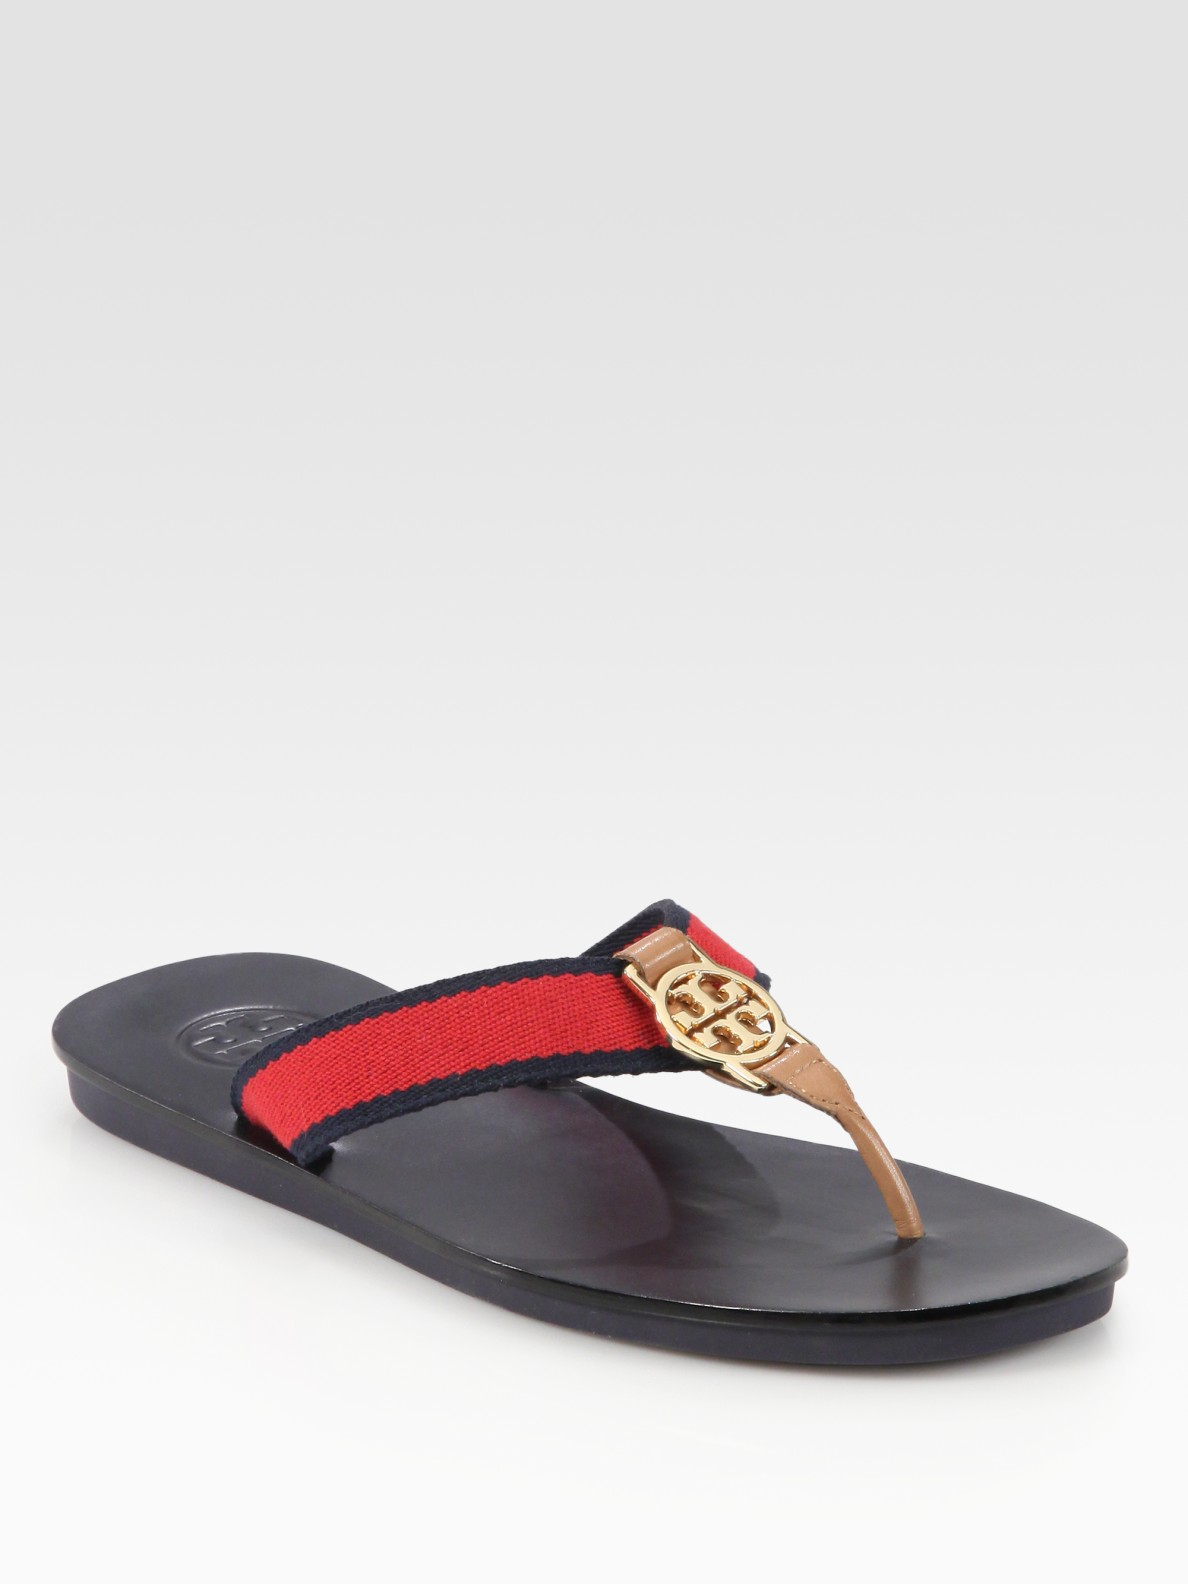 17dd823b98c Lyst - Tory Burch Lise Leather-trim Canvas Logo Thong Sandals in Red